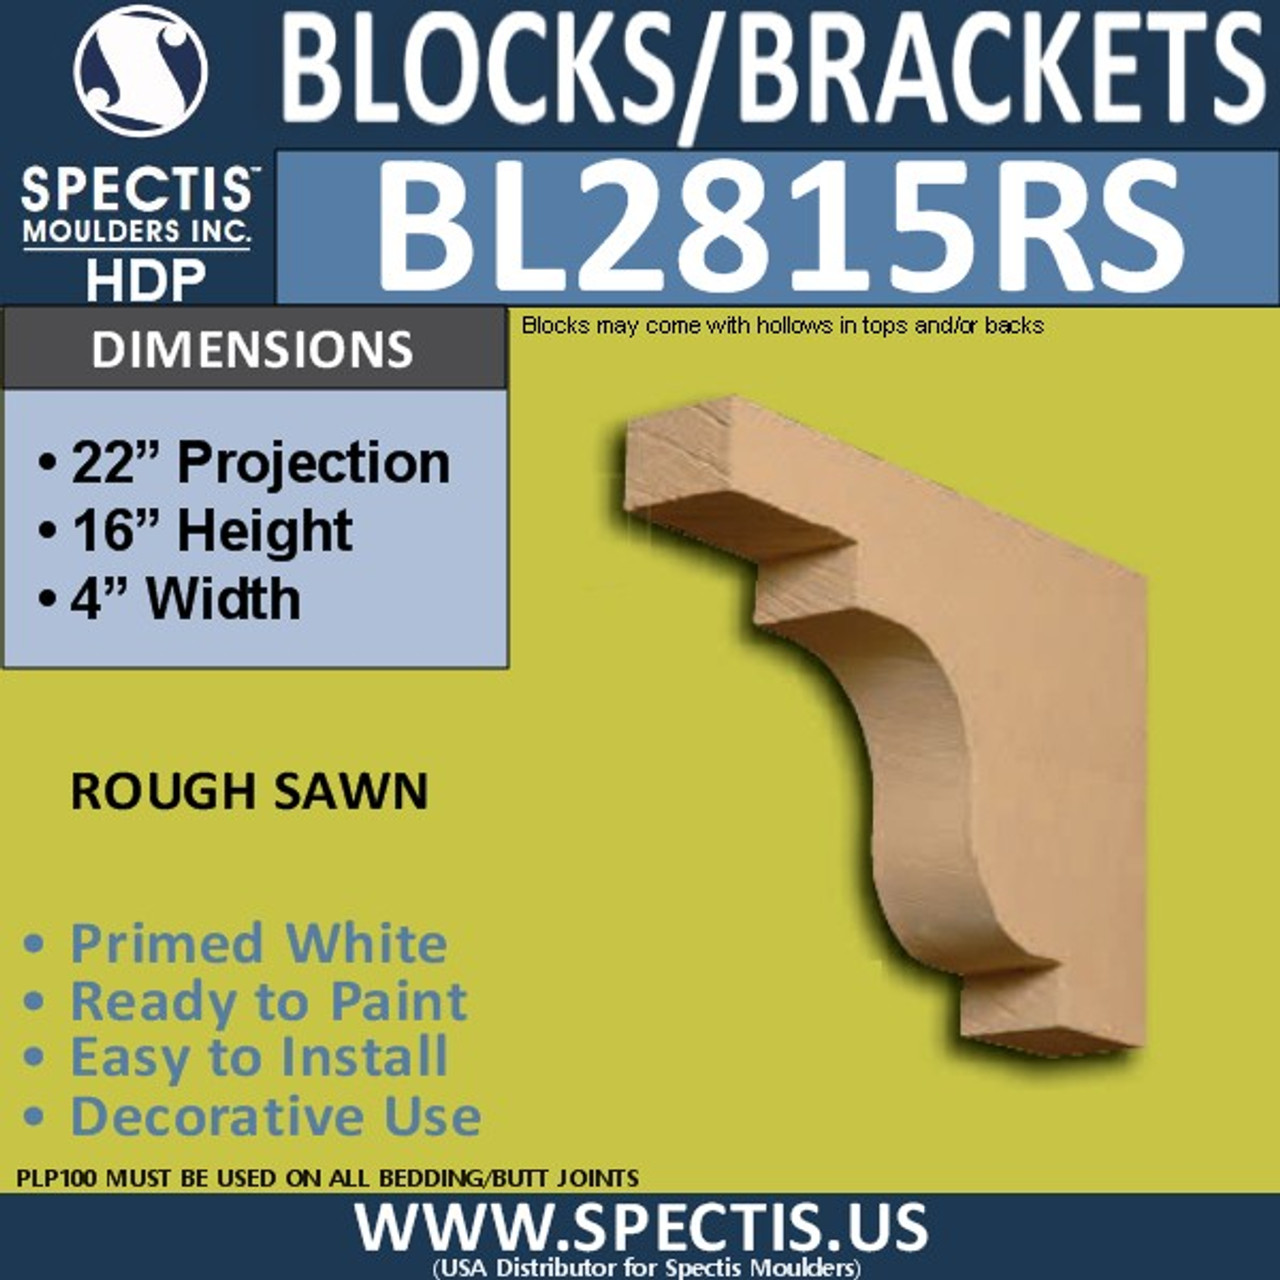 "BL2815RS Rough Sawn Bracket 4""W x 16""H x 22"" P"